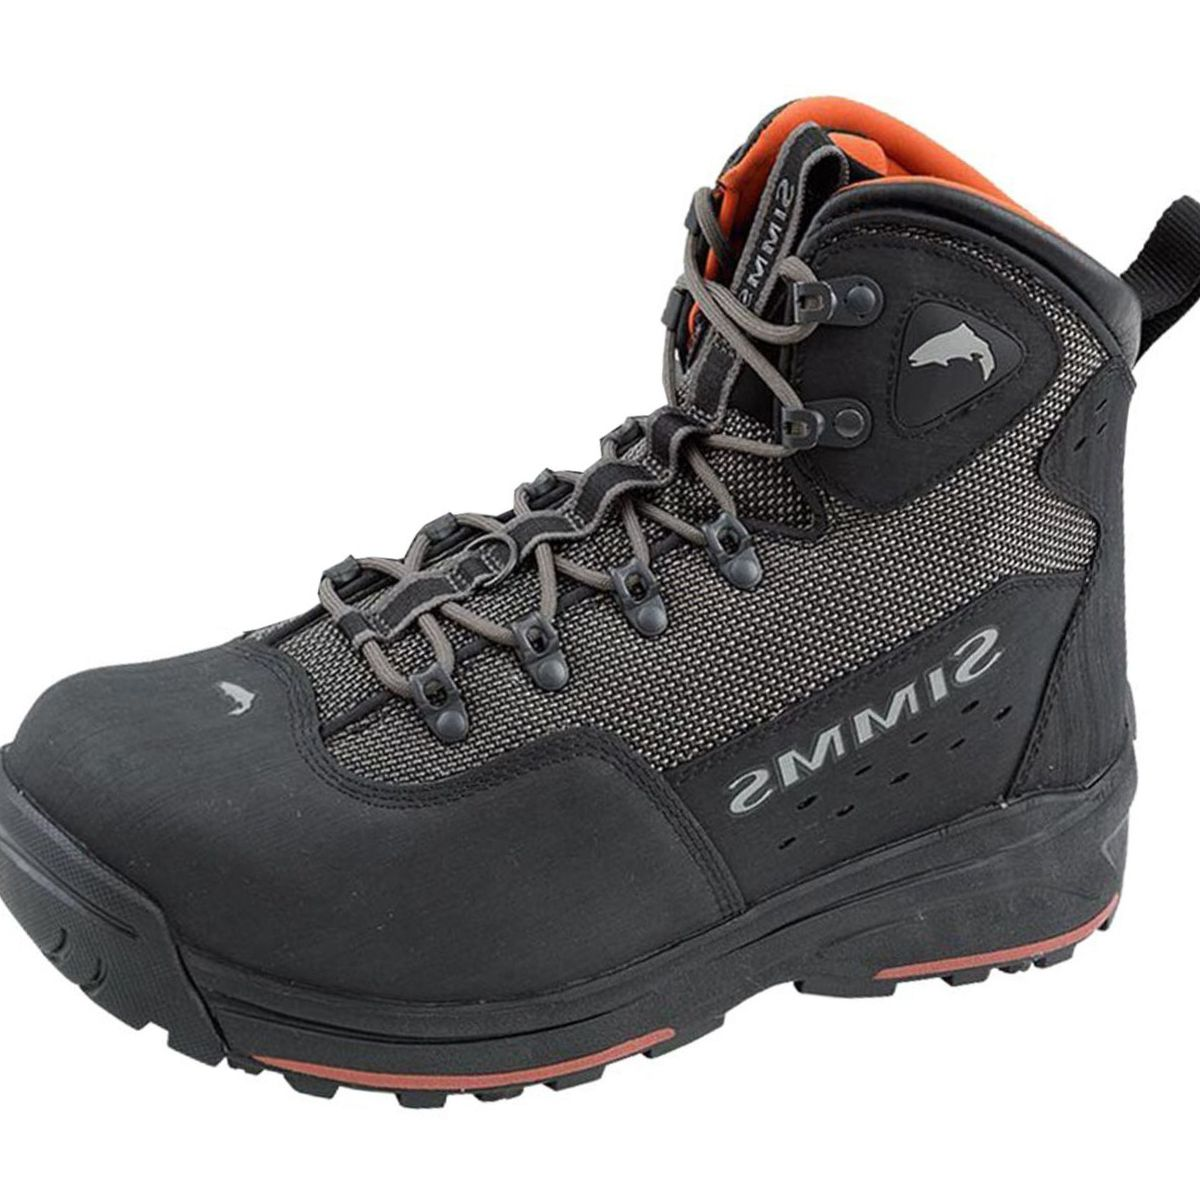 Simms Headwaters Boot - Men's